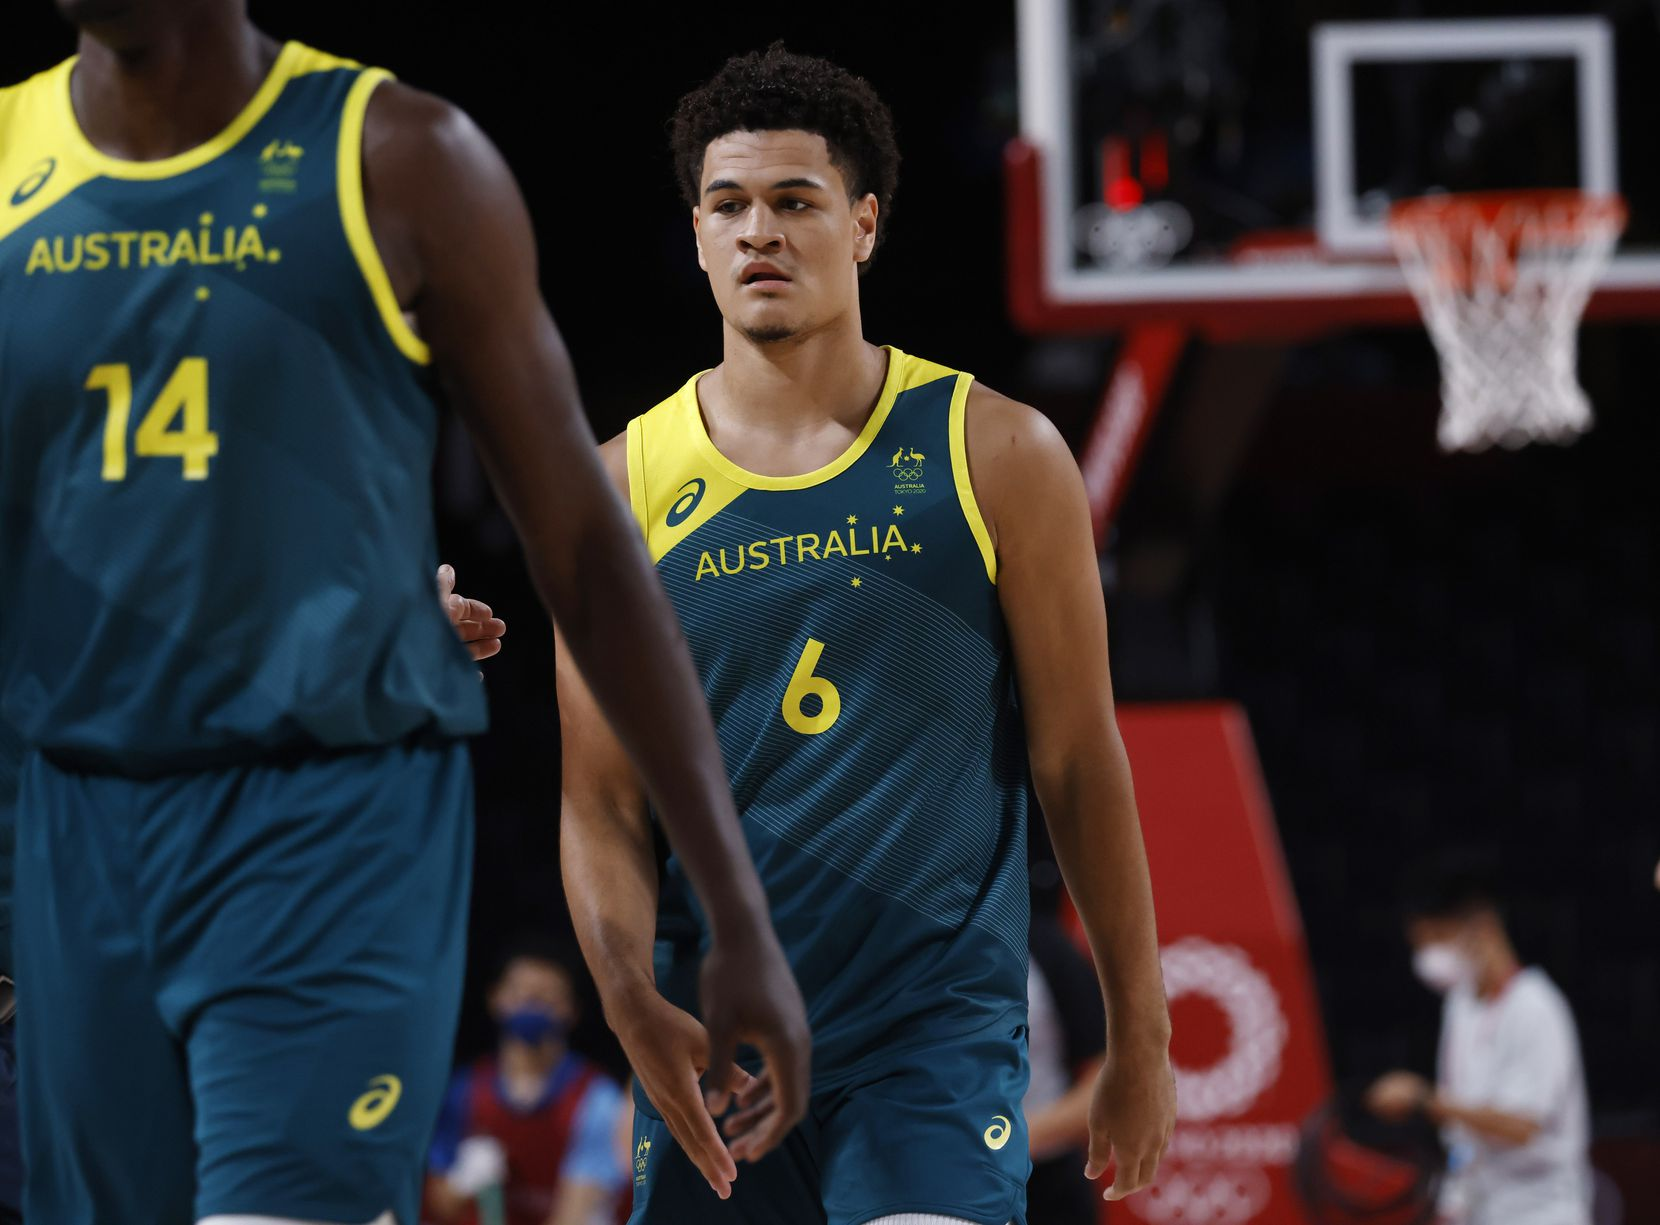 Australia's Josh Green makes his way to the bench during a timeout in a game against USA during the second half of a men's basketball semifinal at the postponed 2020 Tokyo Olympics at Saitama Super Arena, on Thursday, August 5, 2021, in Saitama, Japan. USA defeated Australia 97-78 to advance to the gold medal game. (Vernon Bryant/The Dallas Morning News)